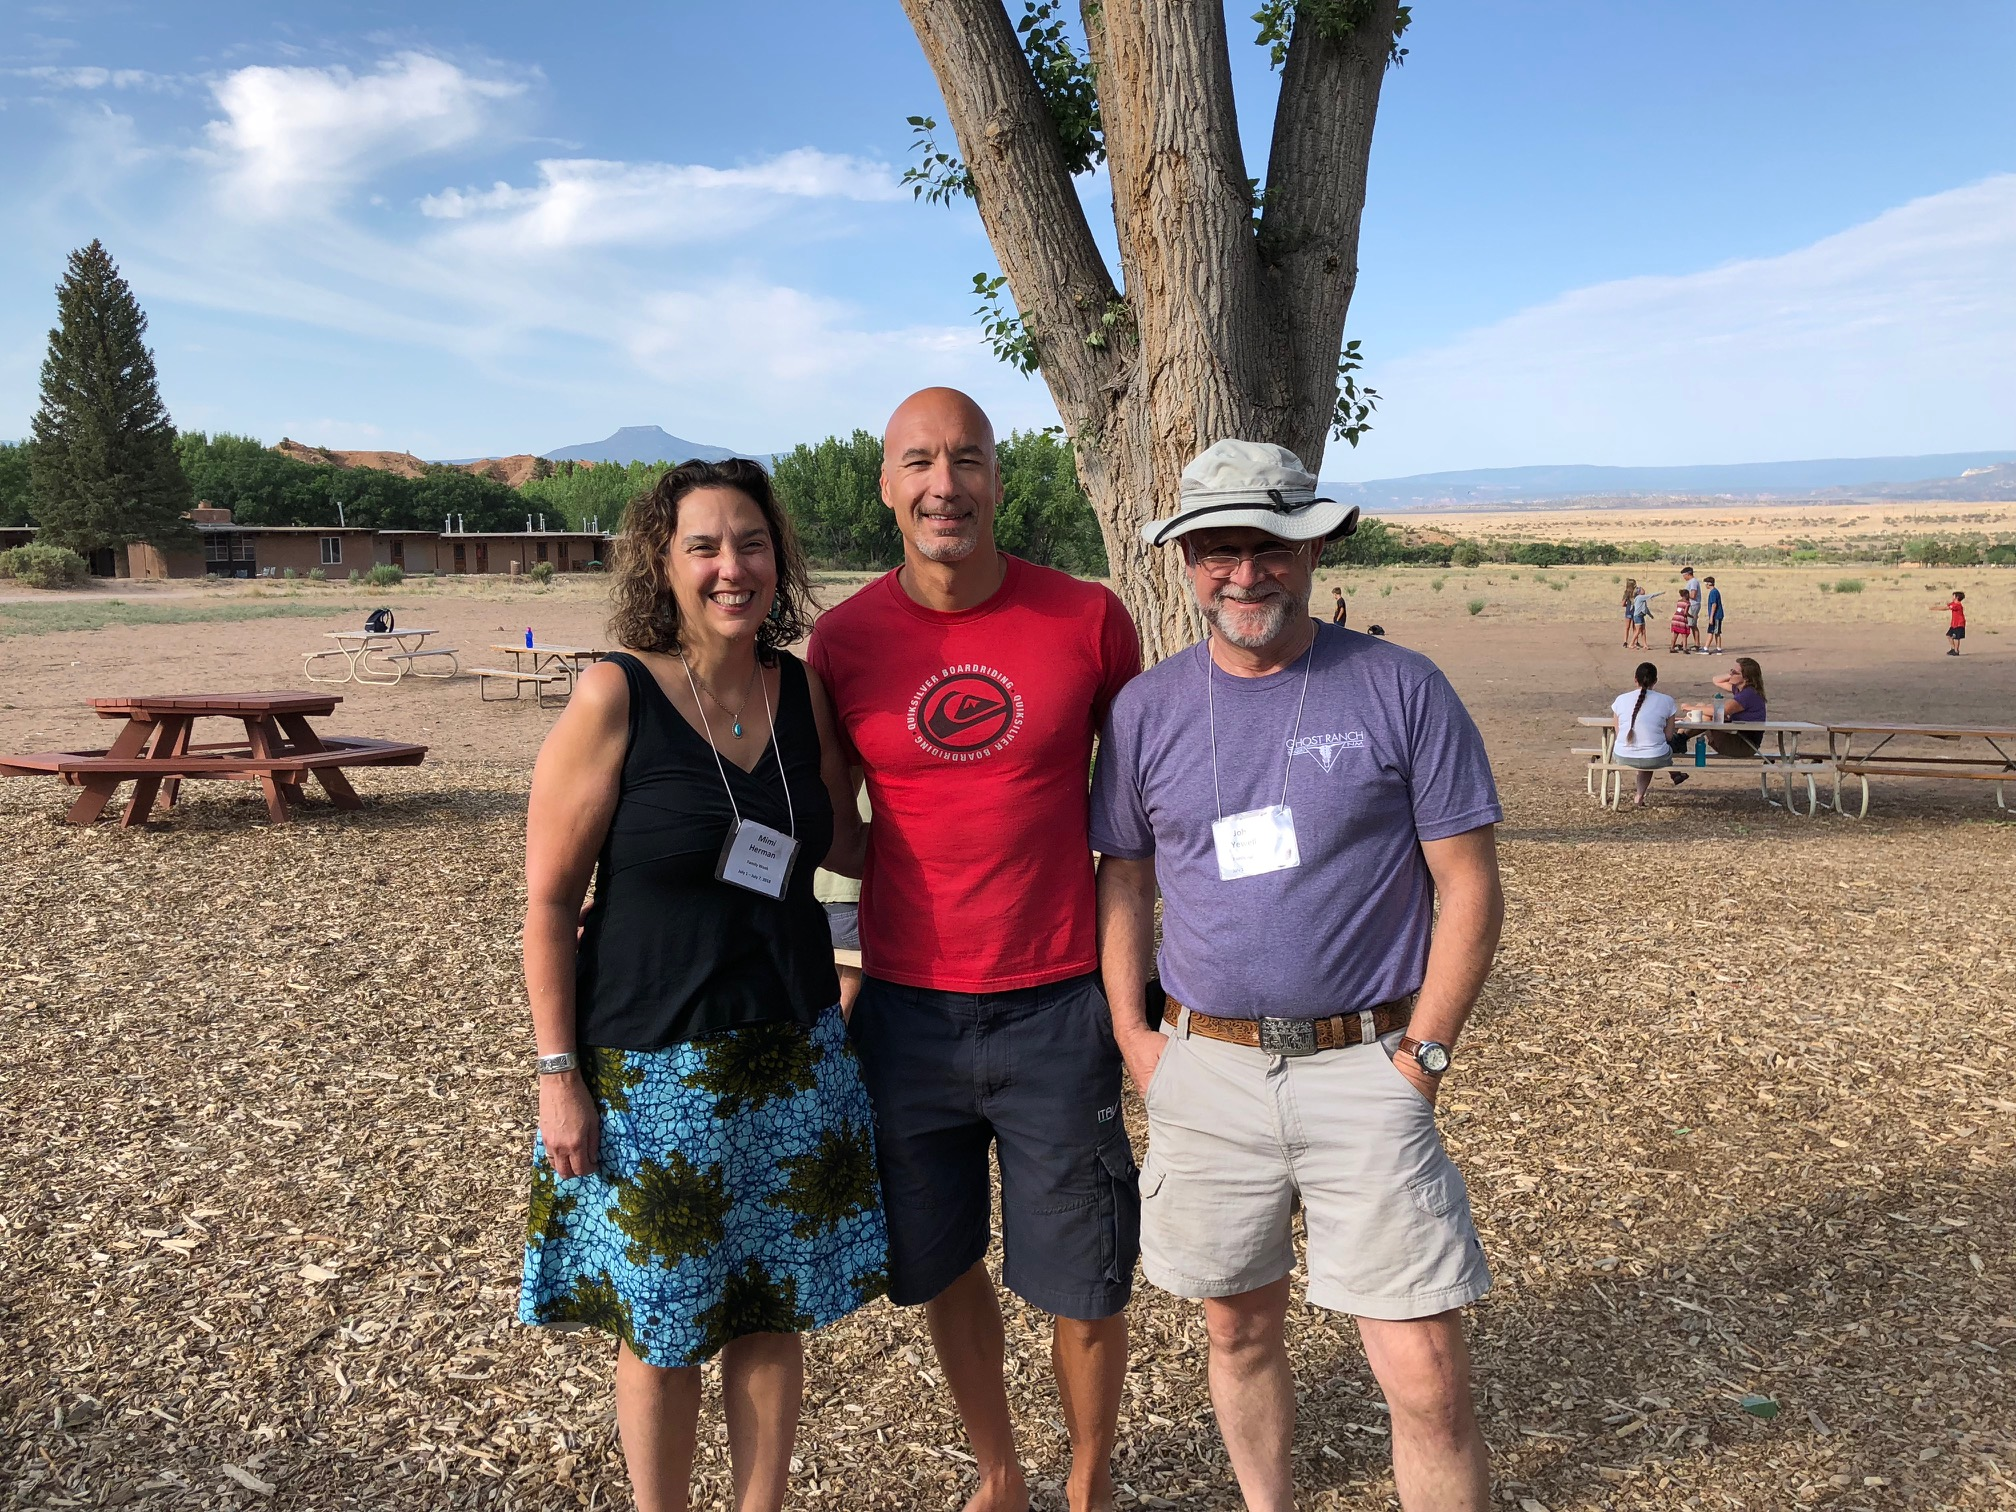 Mimi and John with astronaut Luca Parmitano at Ghost Ranch in New Mexico, July, 2018.